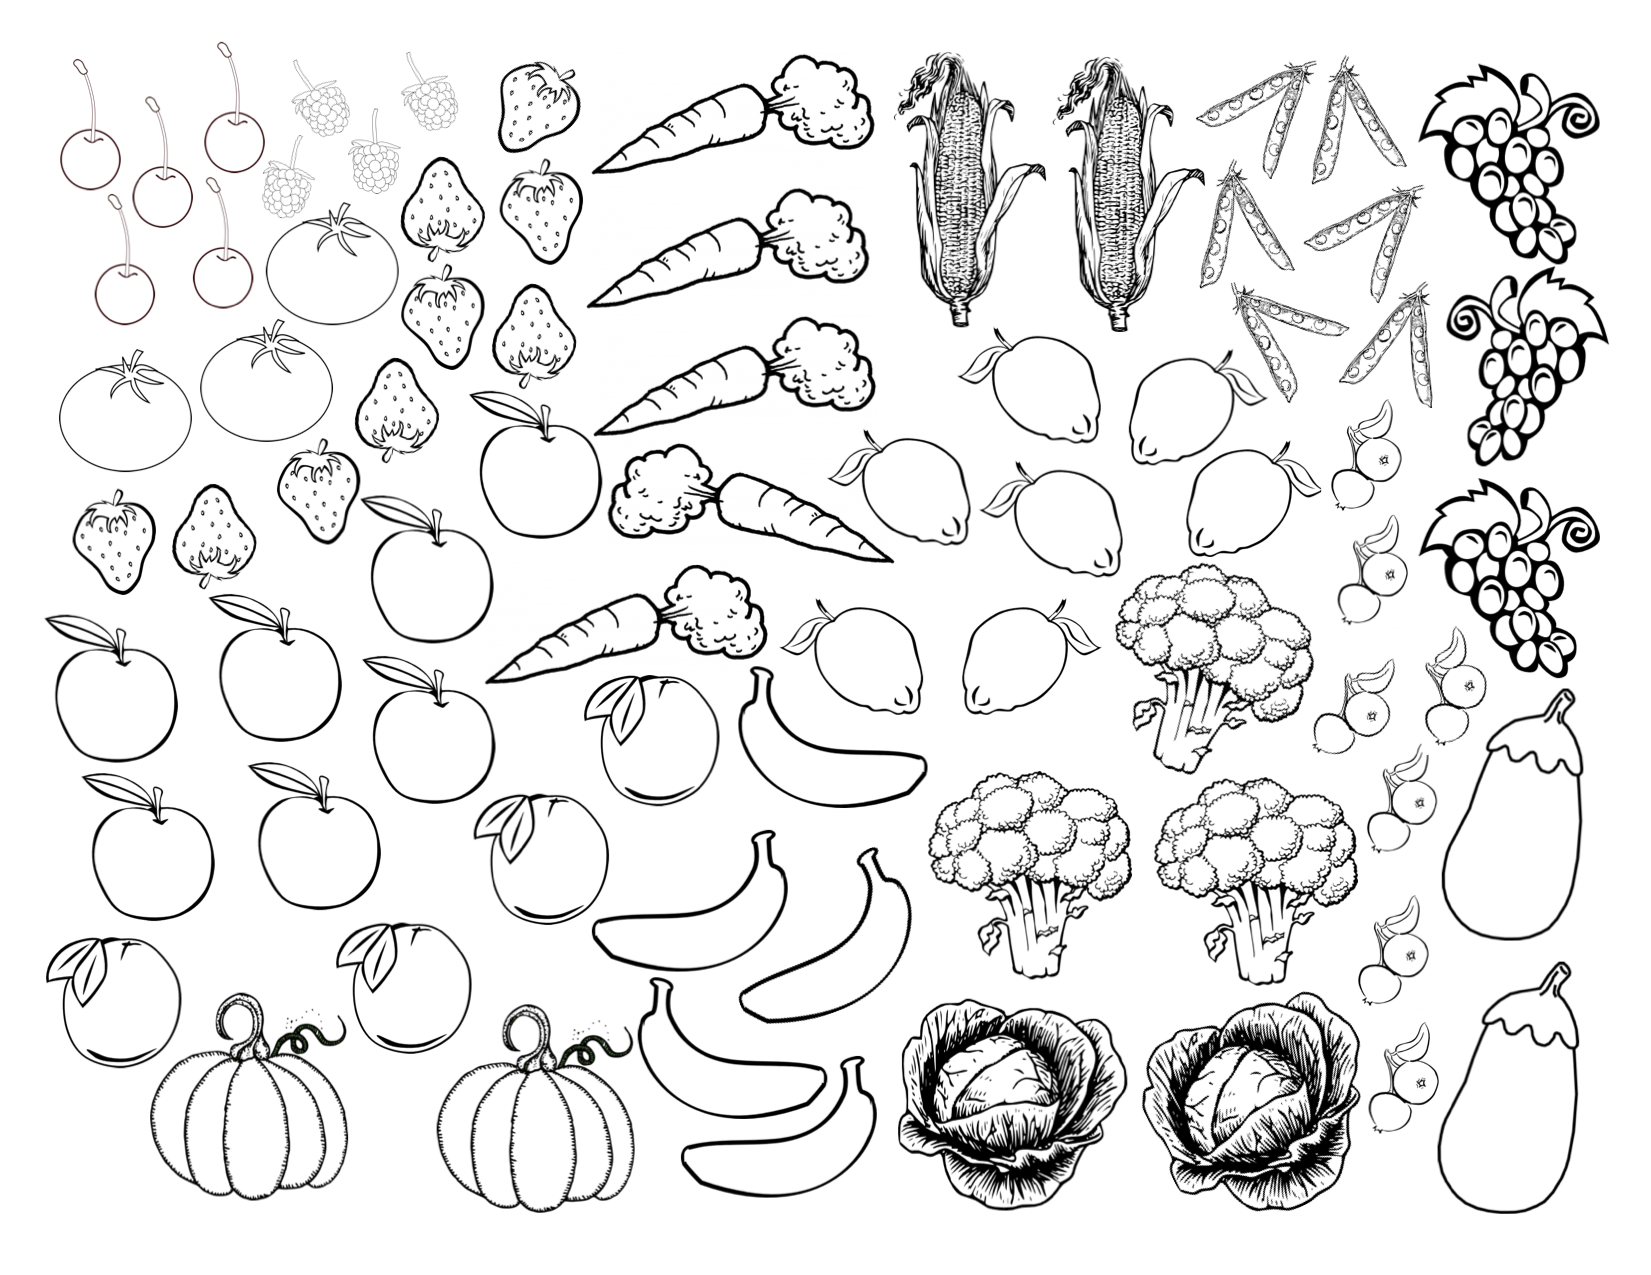 coloring vegetables and fruits fruit and vegetables coloring pages for kids printable vegetables fruits and coloring